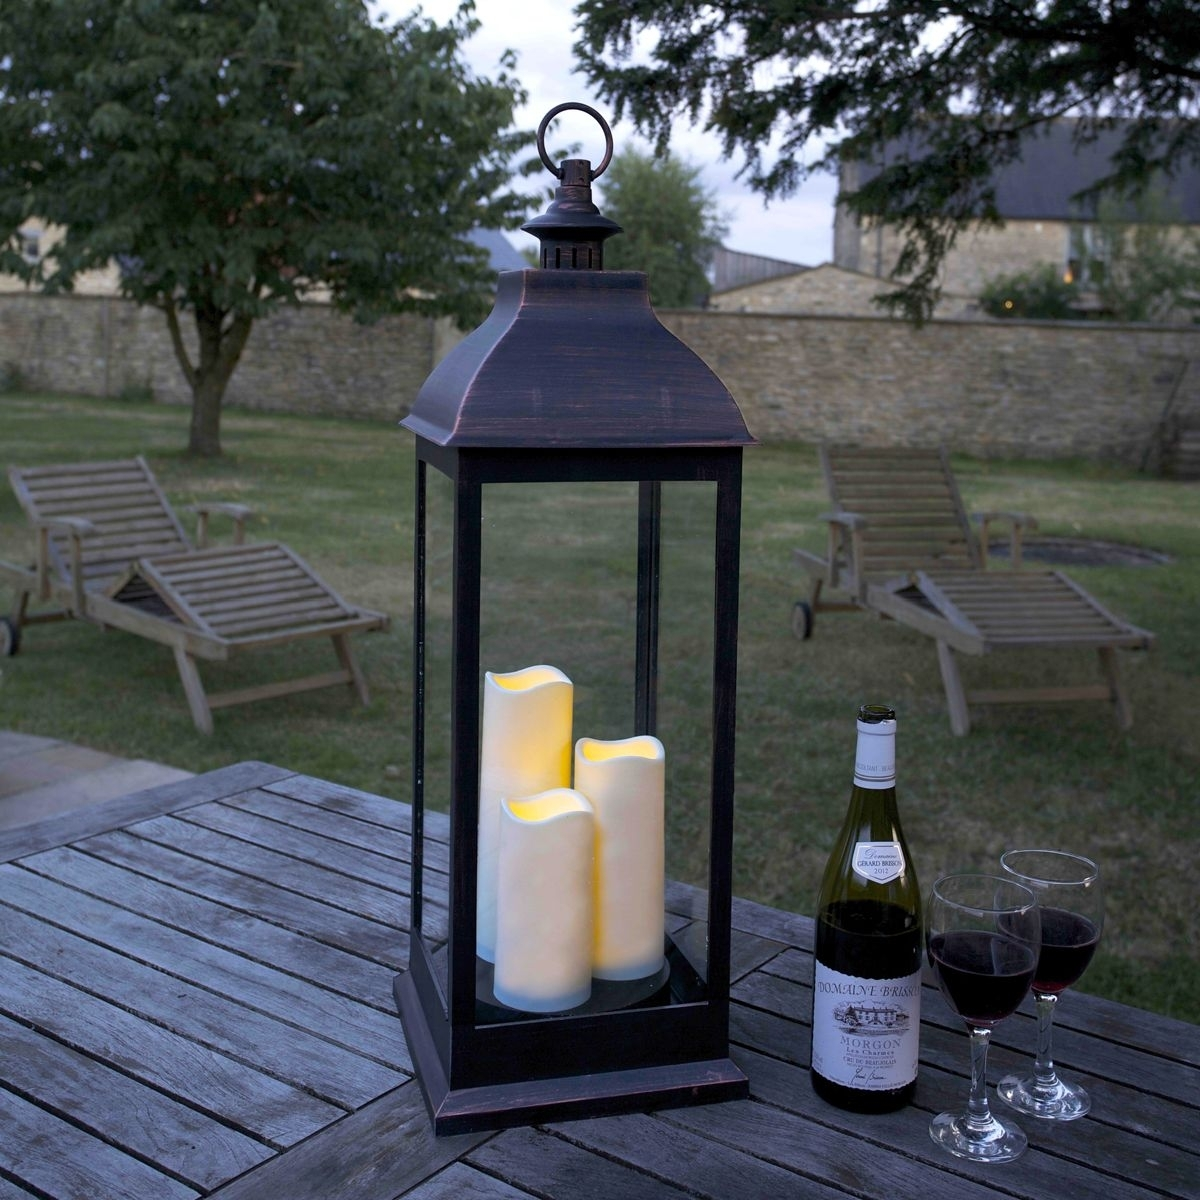 Popular Photo of Outdoor Lanterns With Battery Operated Candles